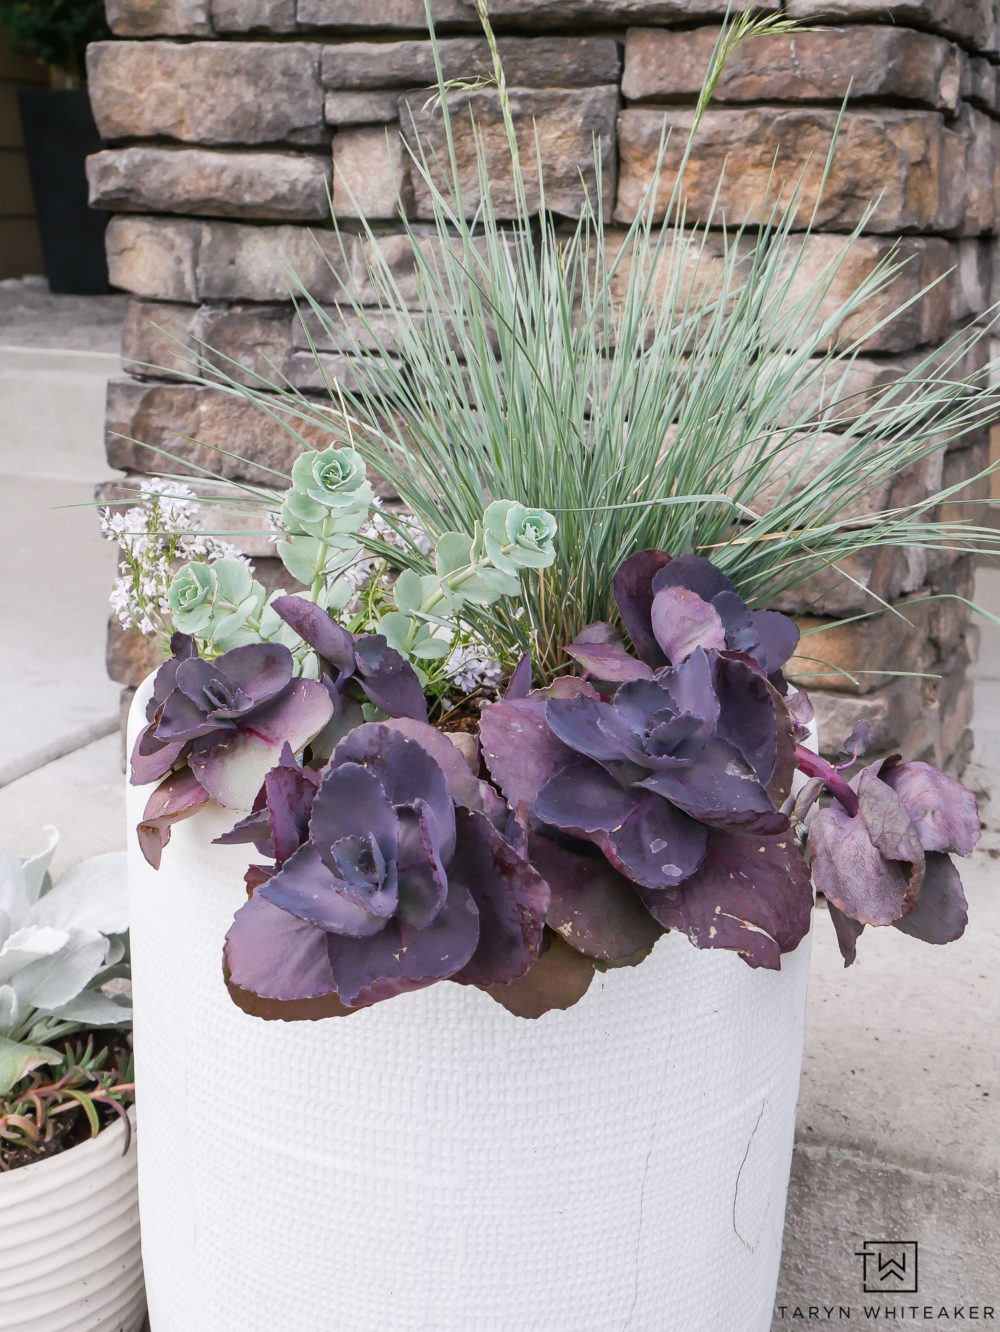 Succulent Planters! Love all the deep earth tone colors together.